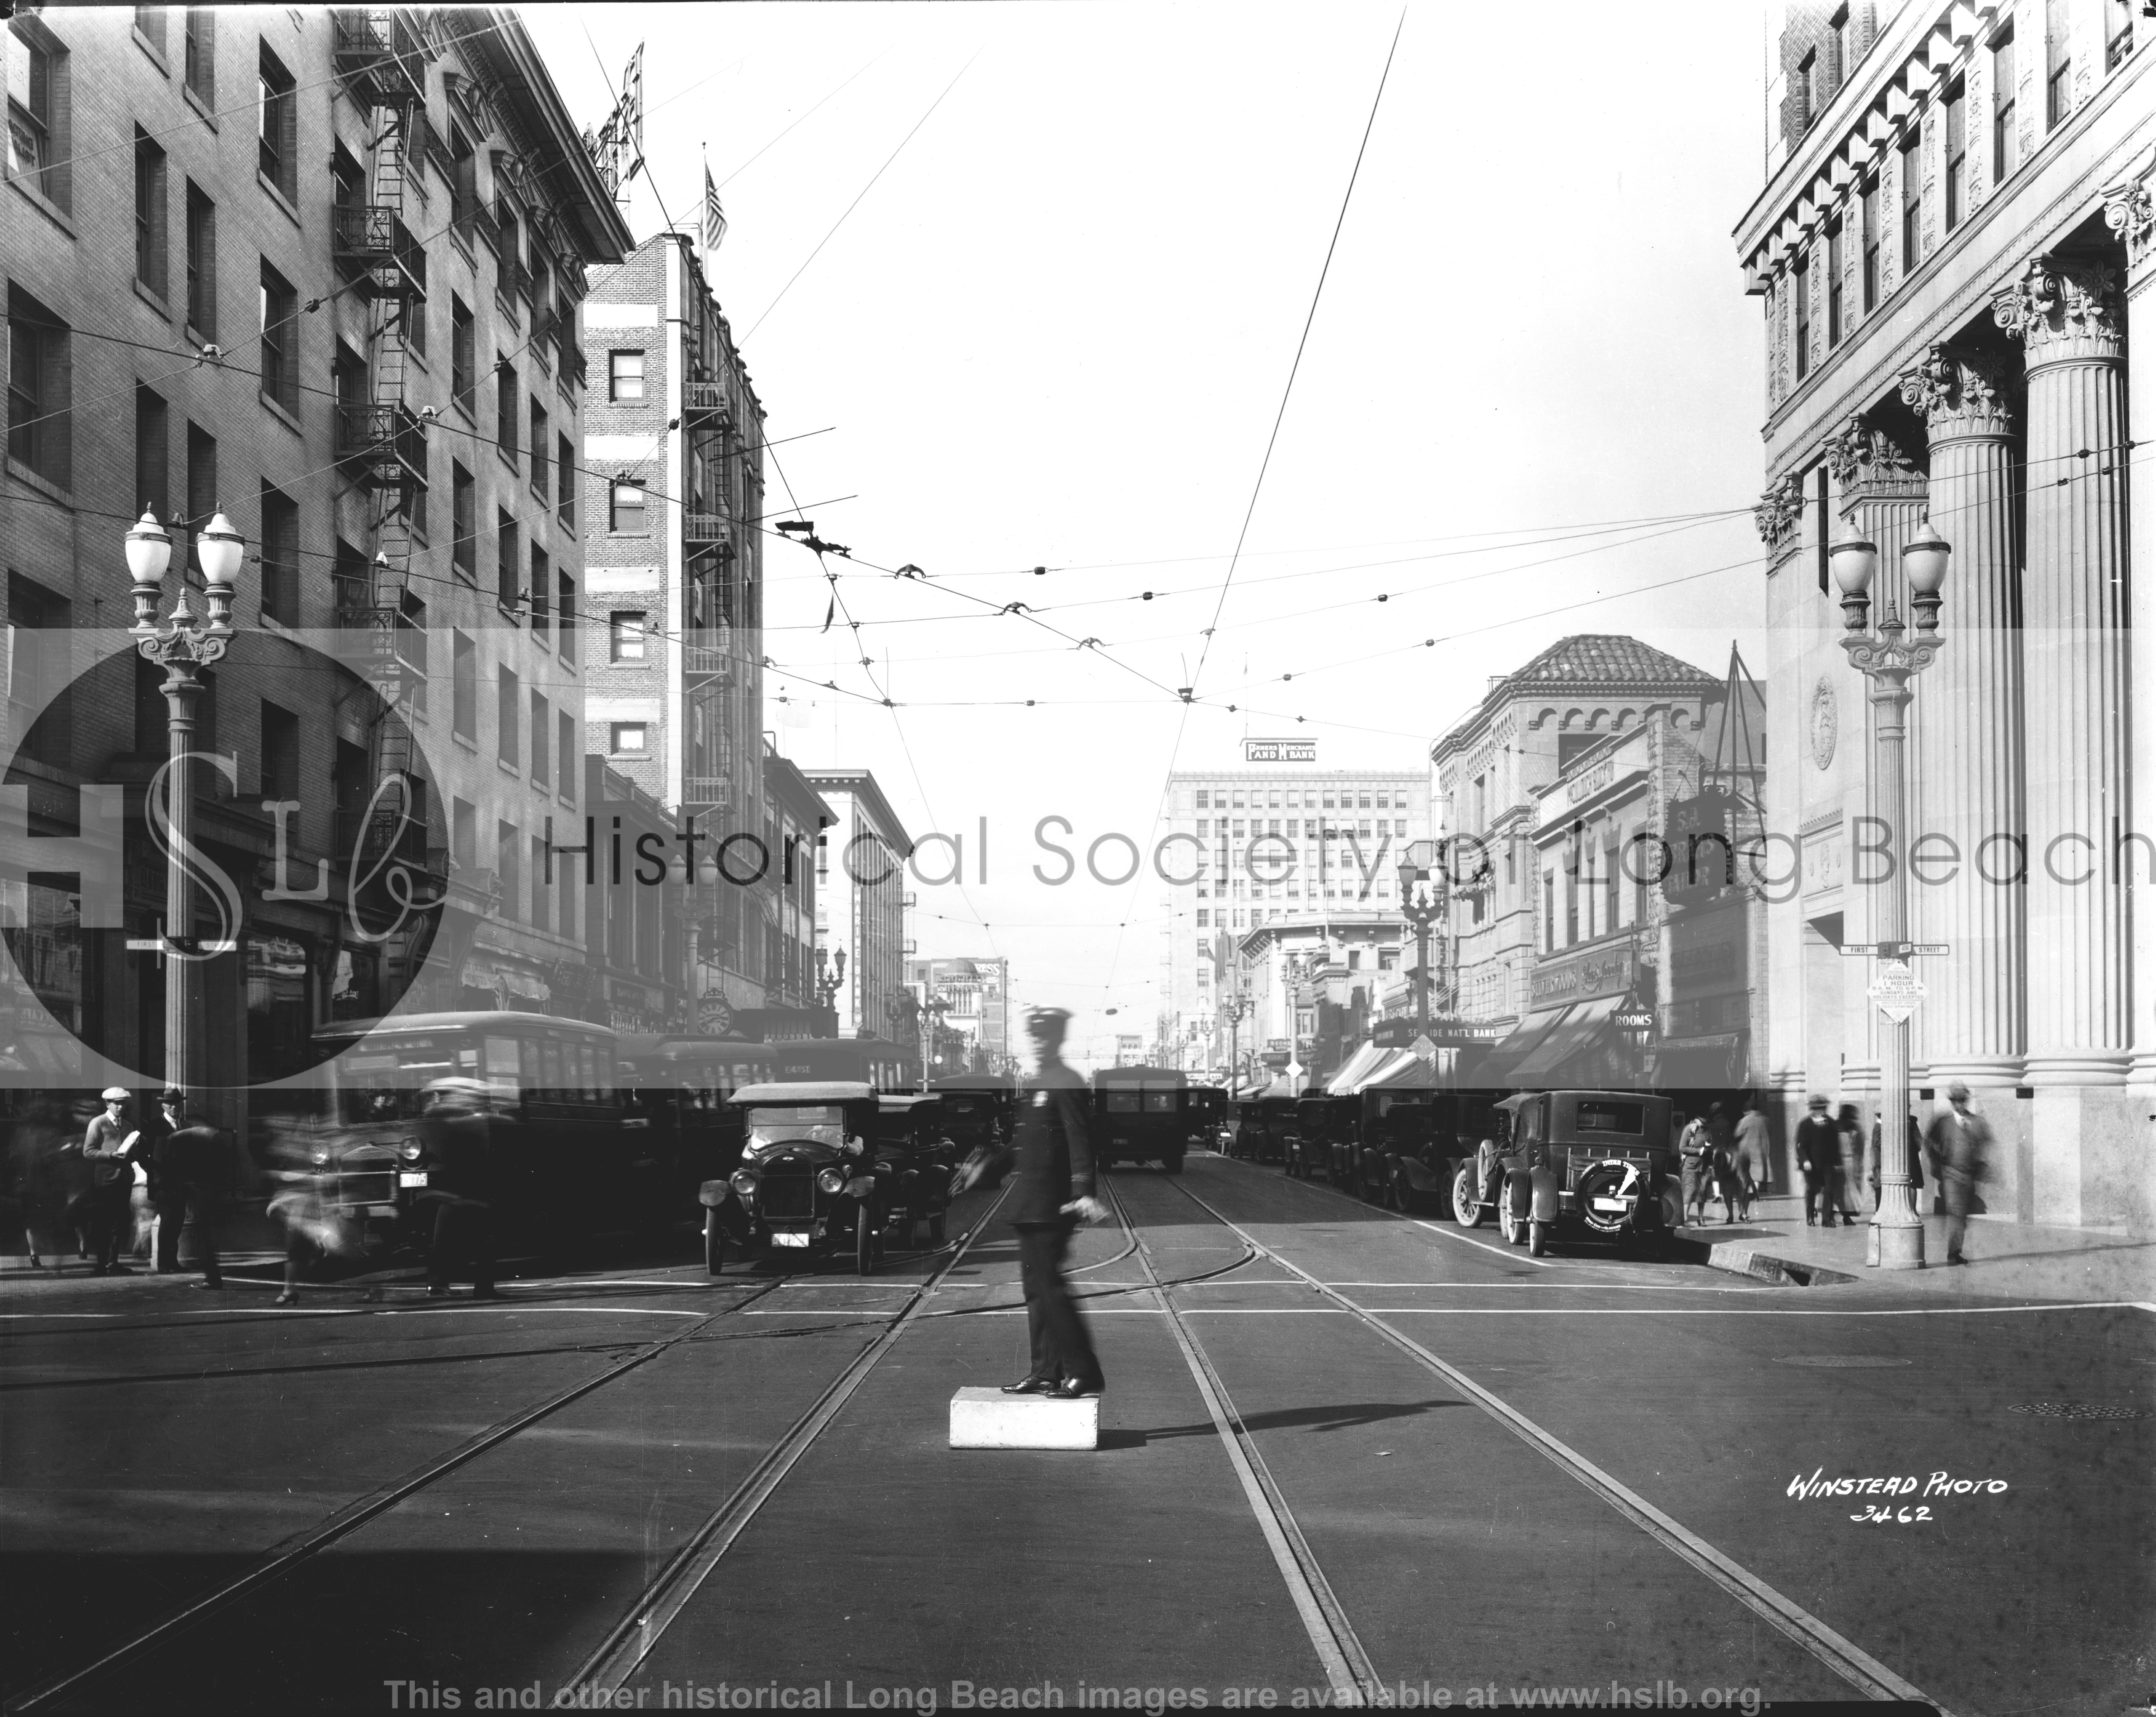 Pine & First, 1925 vintage photograph